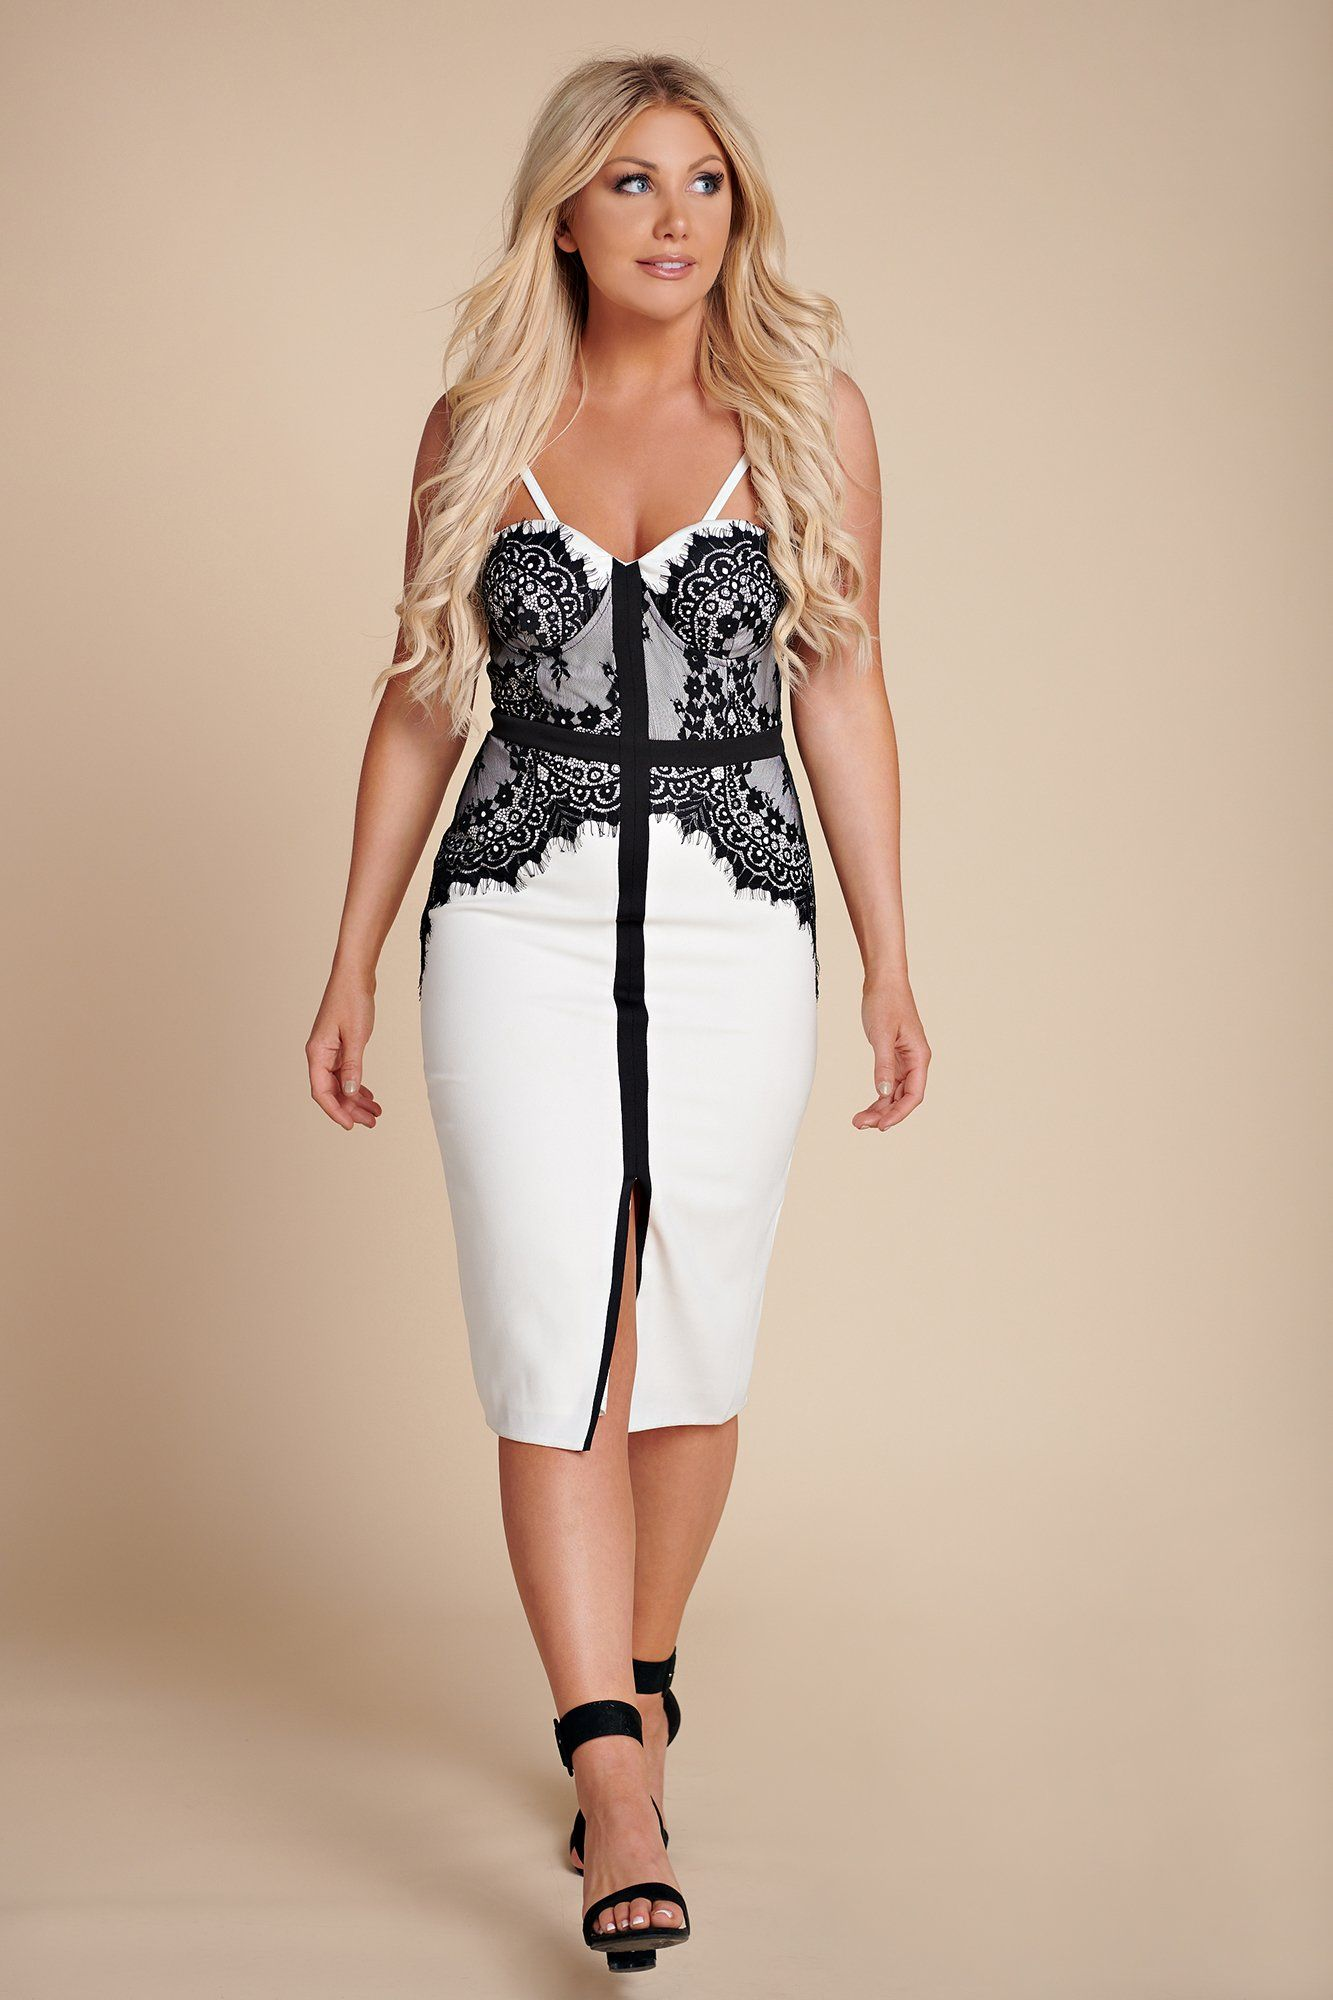 c9b76e5186 Love Me Right Lace Dress (White/Black) in 2019 | Dresses | Lace ...